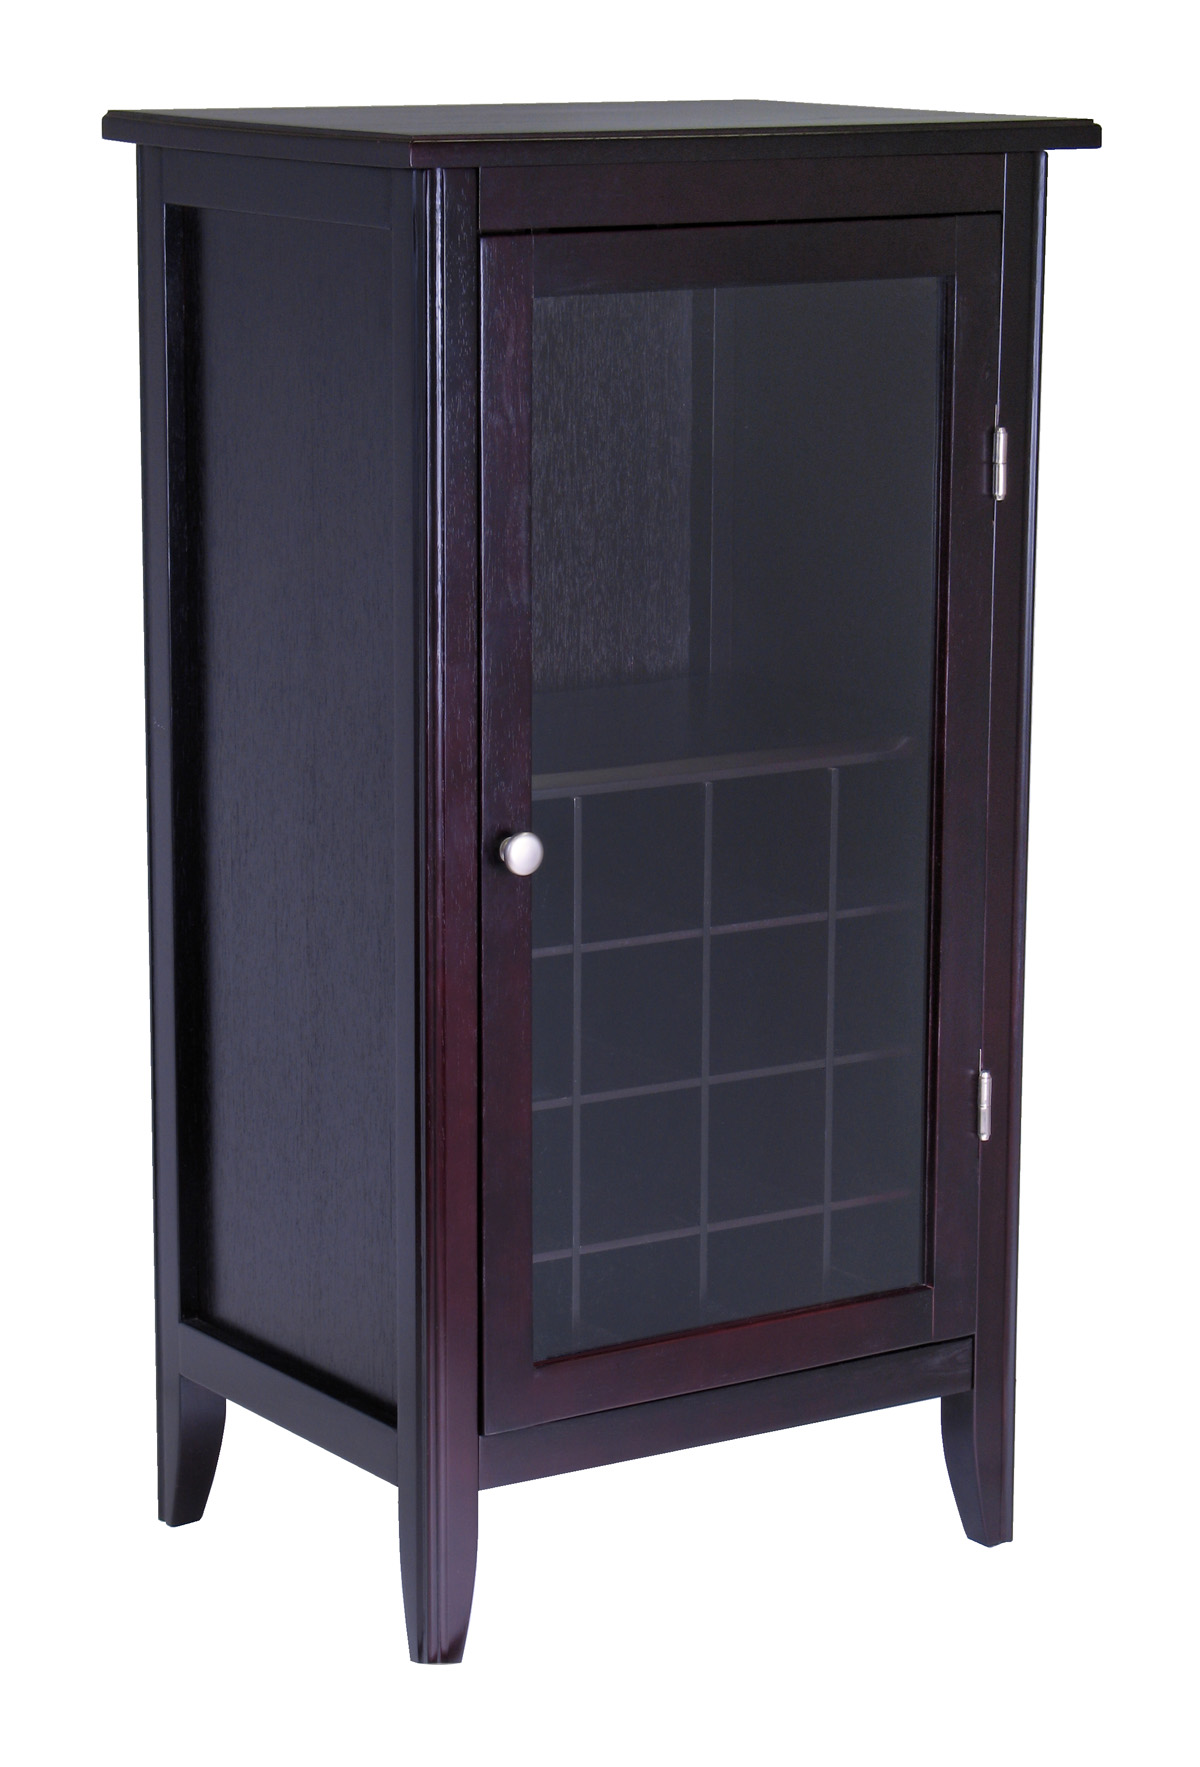 Winsome ryan wine cabinet 16 bottle one door glass rack for 1 door storage cabinet